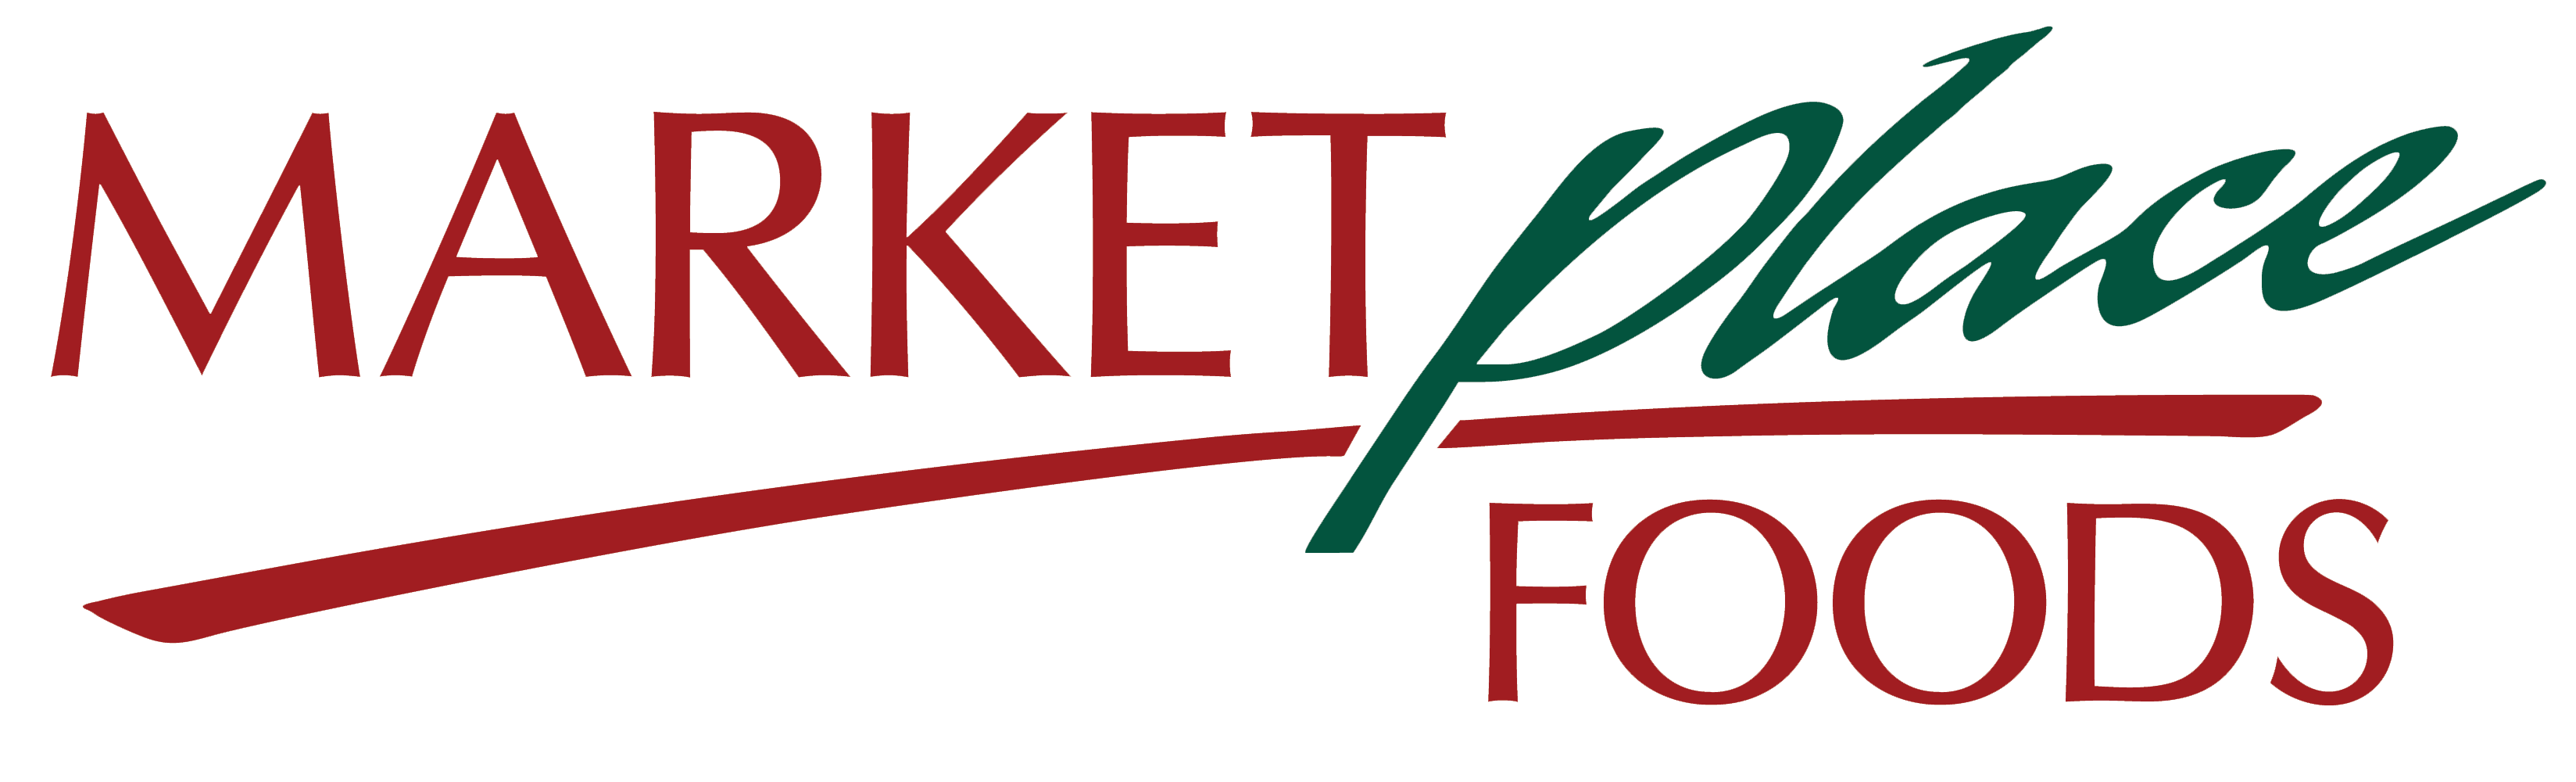 Marketplace Foods logo